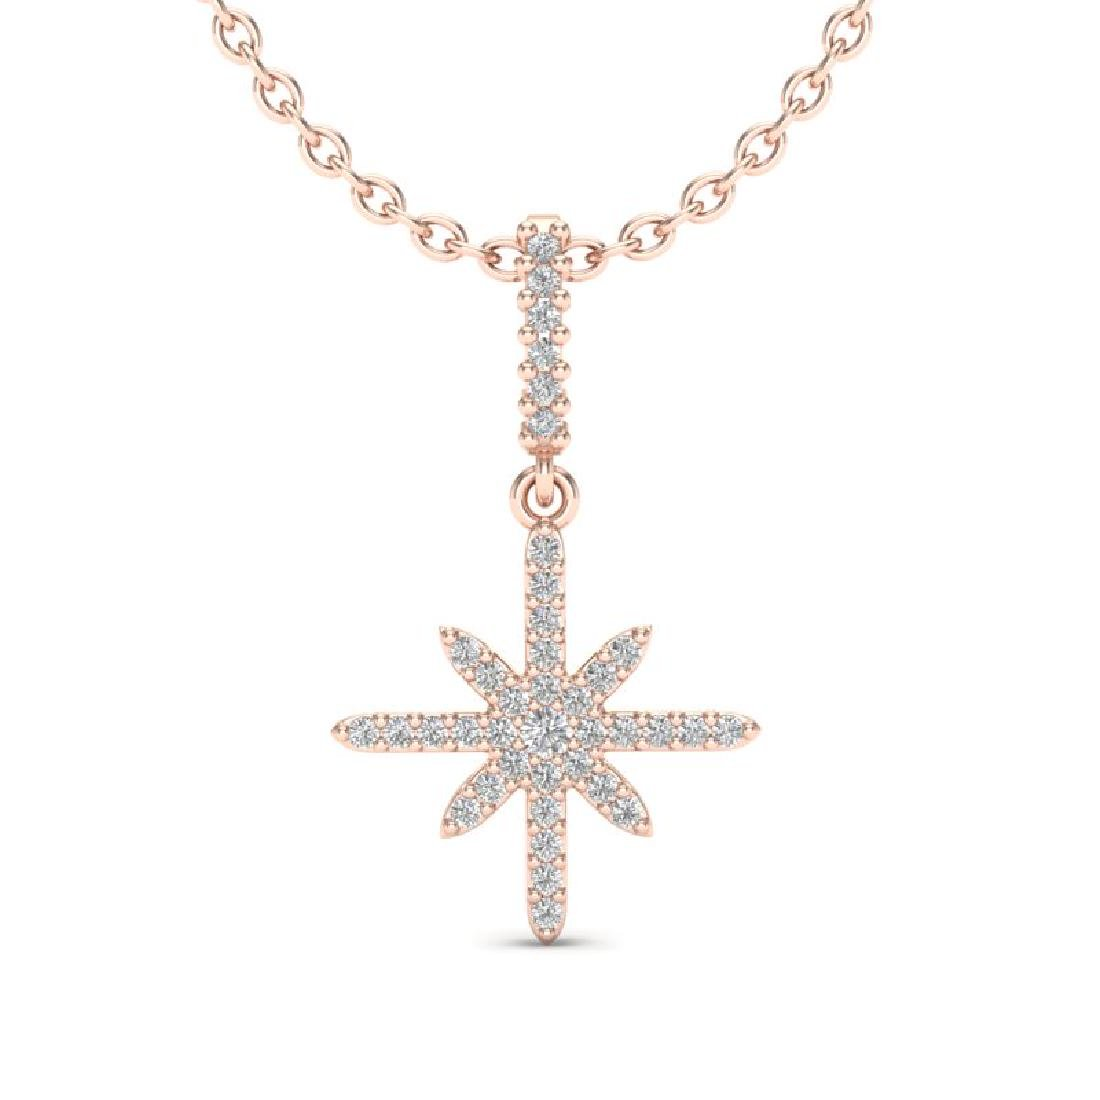 0.38 CTW Micro Pave VS/SI Diamond Necklace 14K Rose